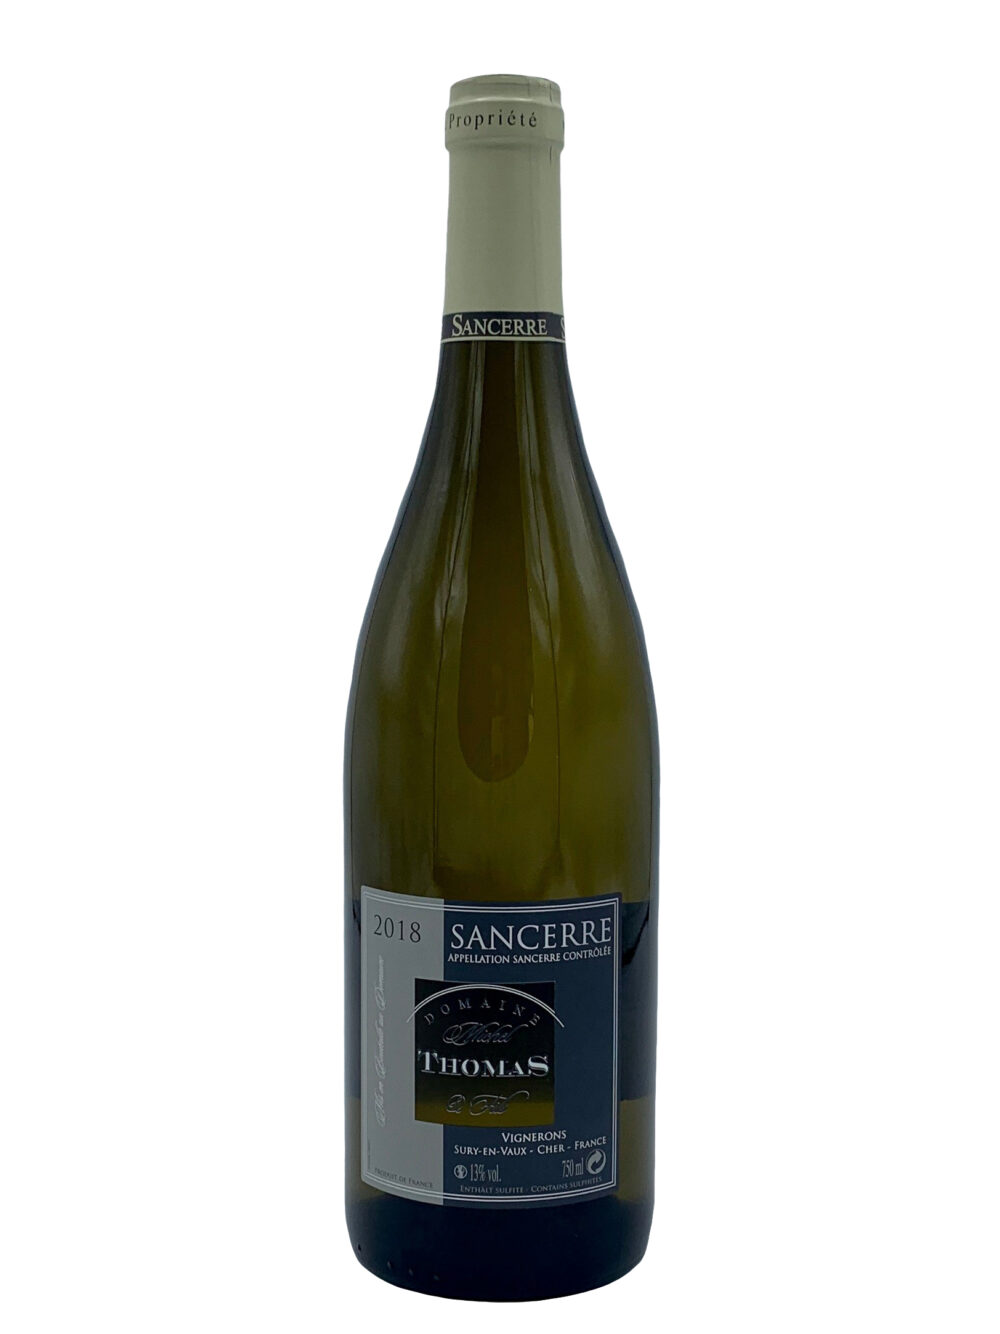 Sancerre domaine michel thomas wit 750